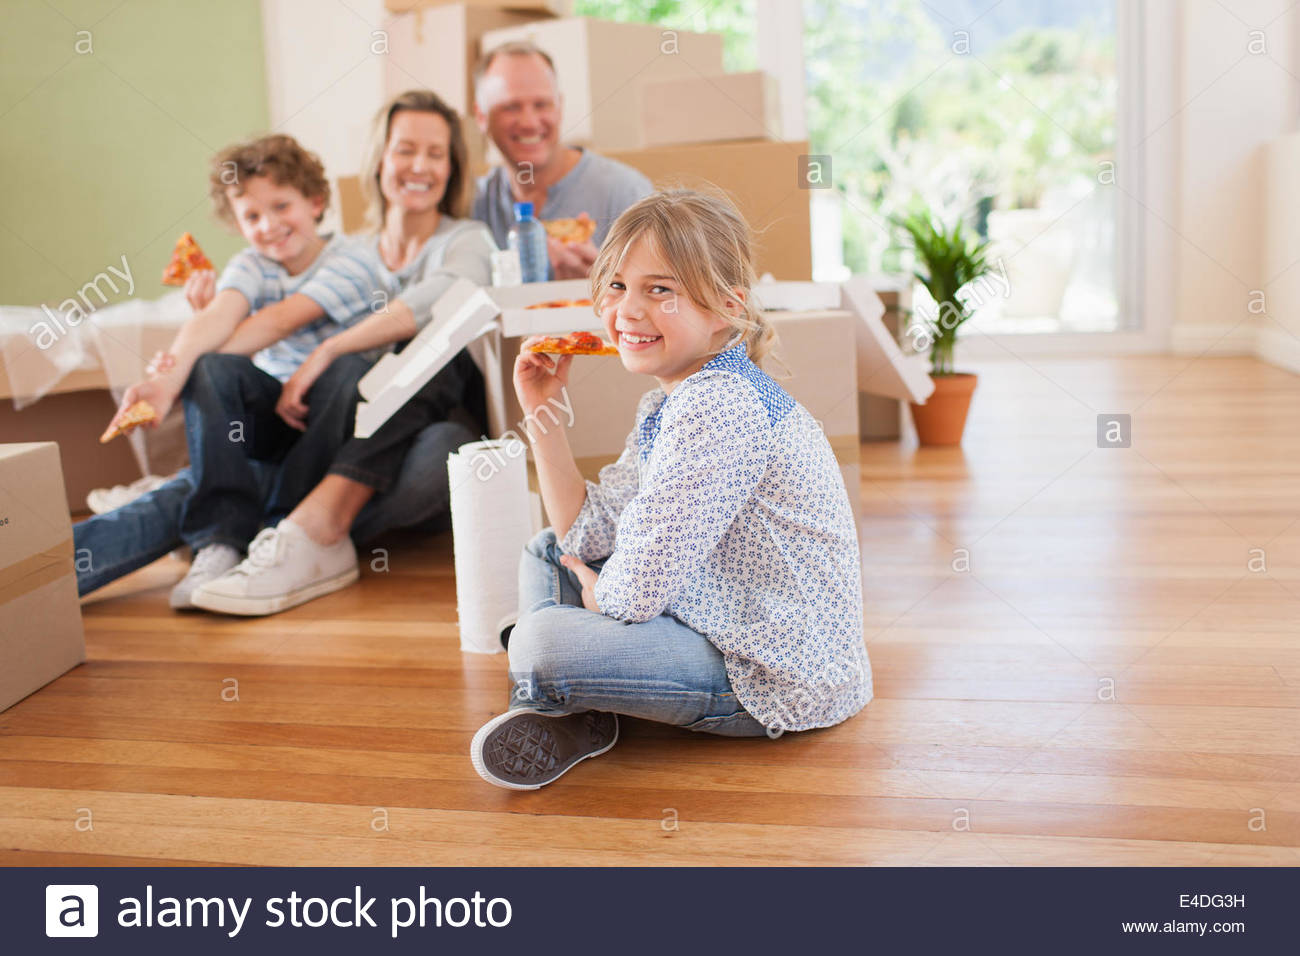 Family eating pizza on the floor in their new house - Stock Image